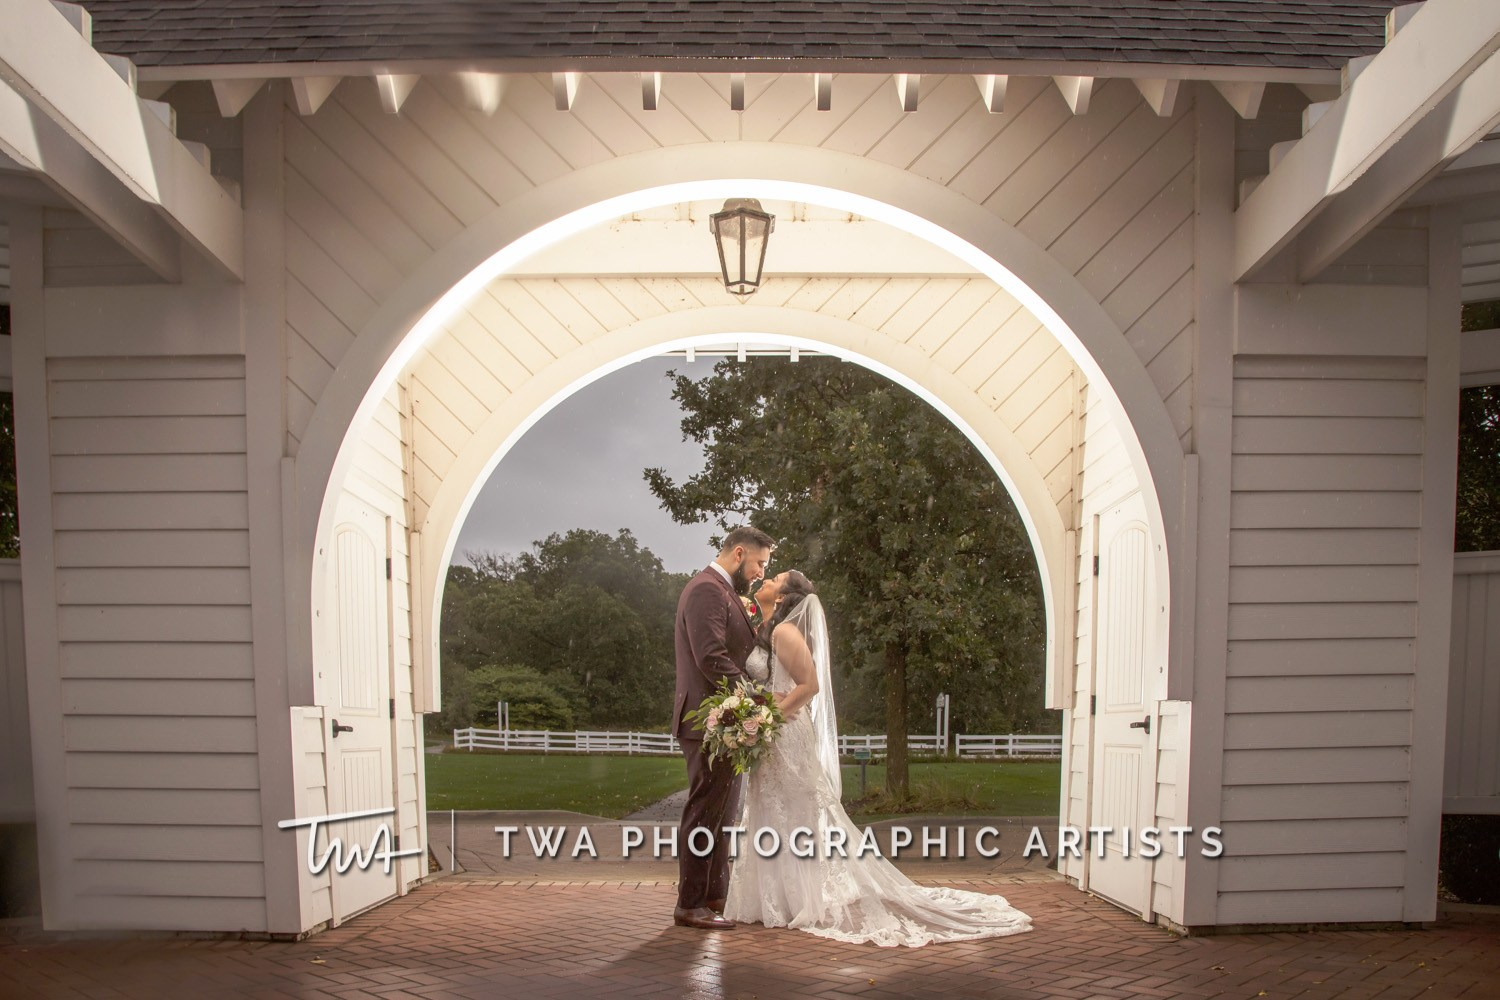 Chicago-Wedding-Photographer-TWA-Photographic-Artists-Danada-House_Ramos_Medrano_WM_DR-052_0941